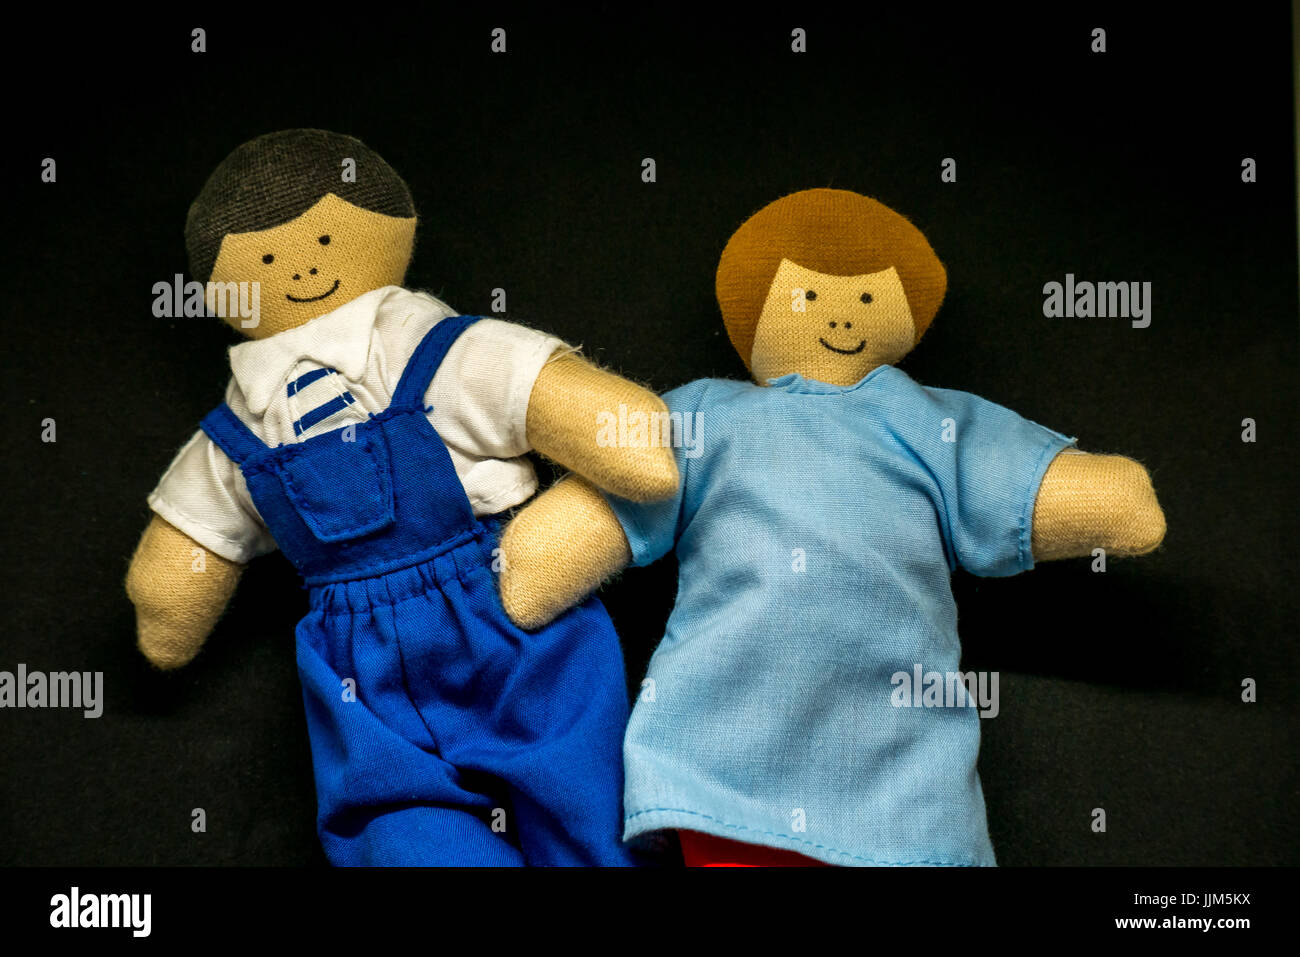 Still life of male and female toy dolls against black background to represent parents, couple, family members, relationships, - Stock Image